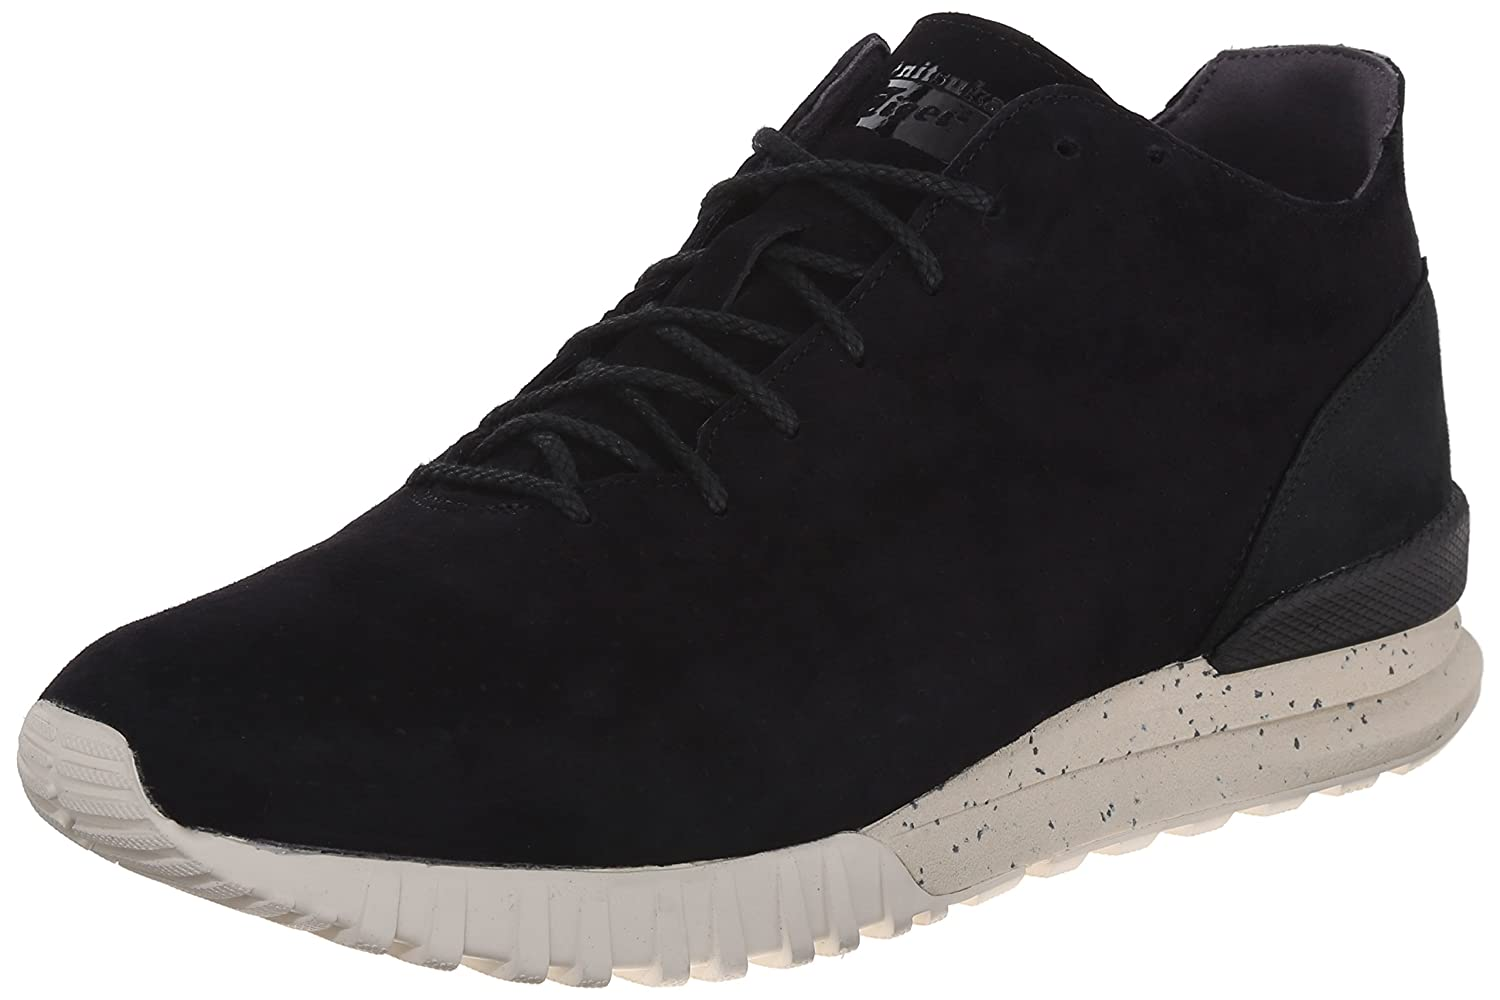 Onitsuka Sneaker Tiger Colorado Eighty-Five Mt. Samsara Fashion Sneaker Onitsuka B00PUZ9YMU 8 D(M) US|Black/Black ae3078